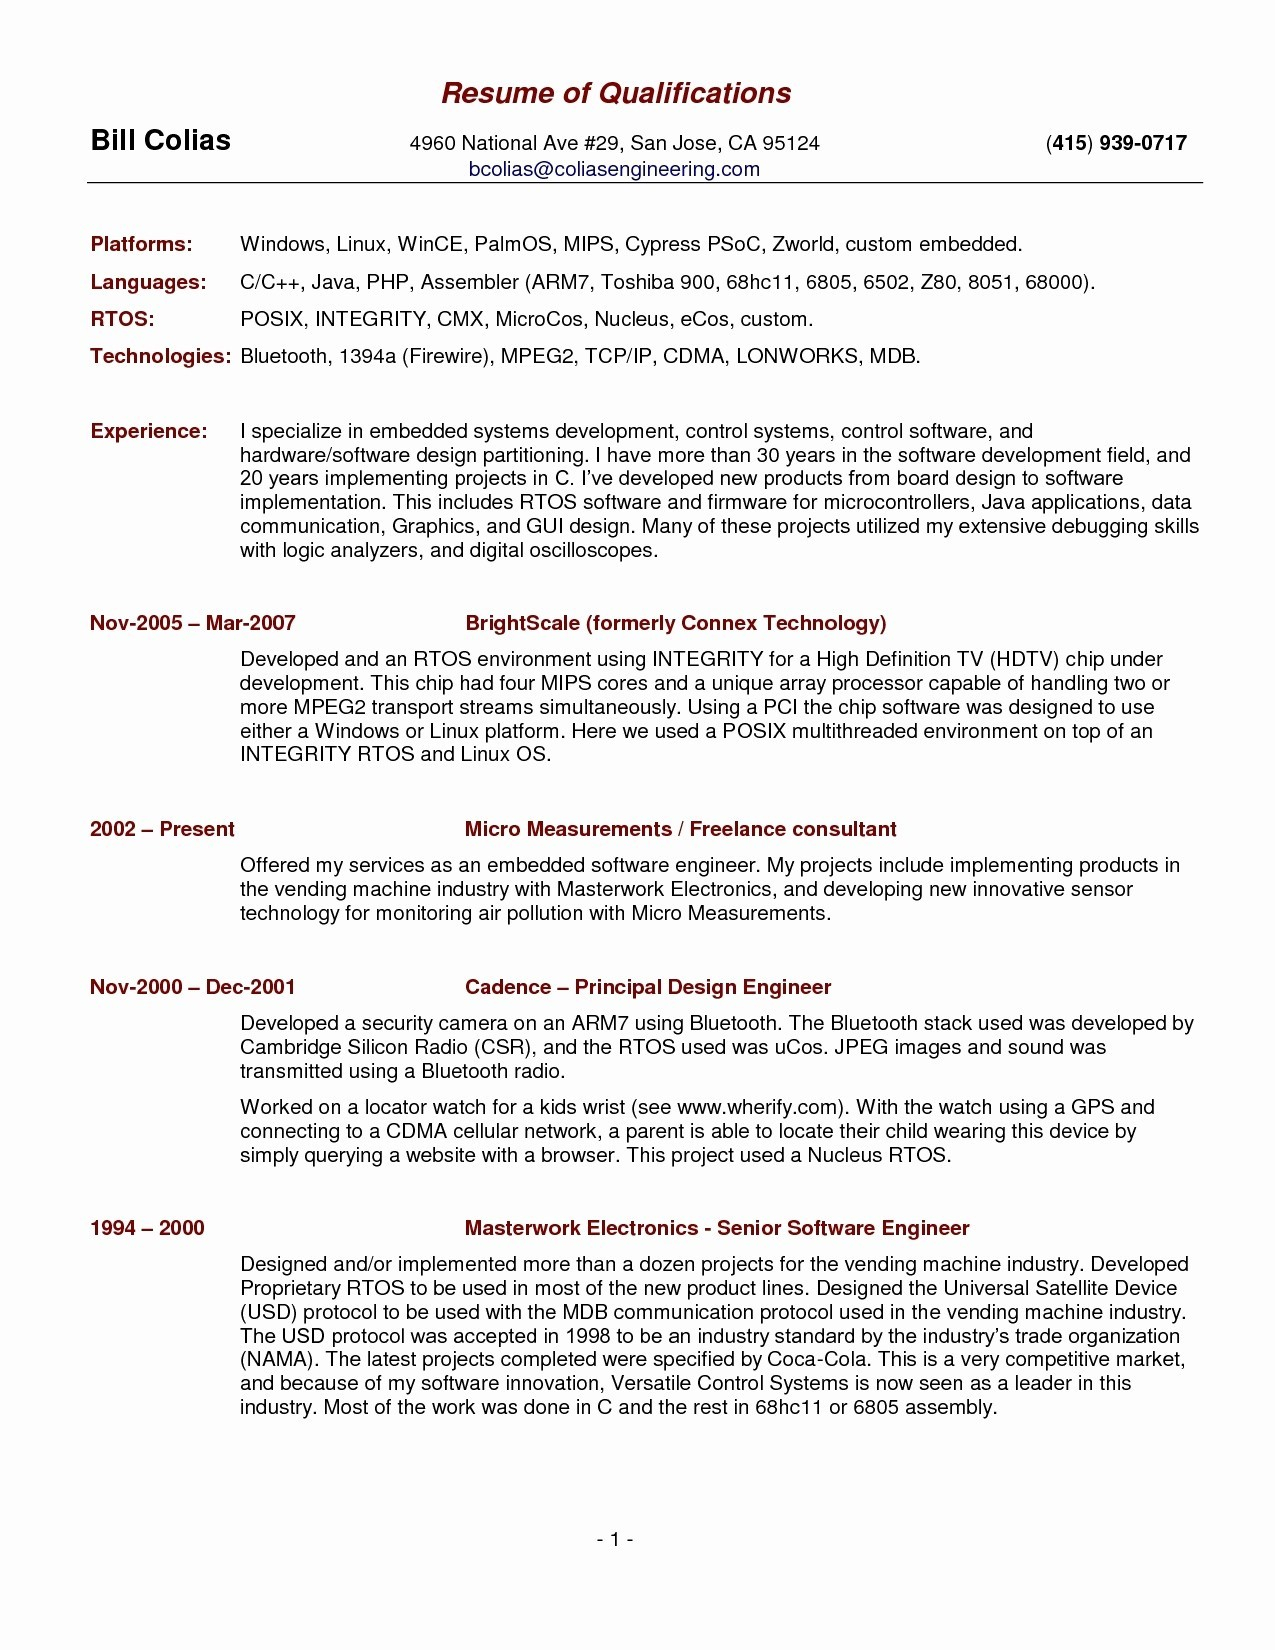 Resume Template for Chef - Download Fresh Chef Resume Sample